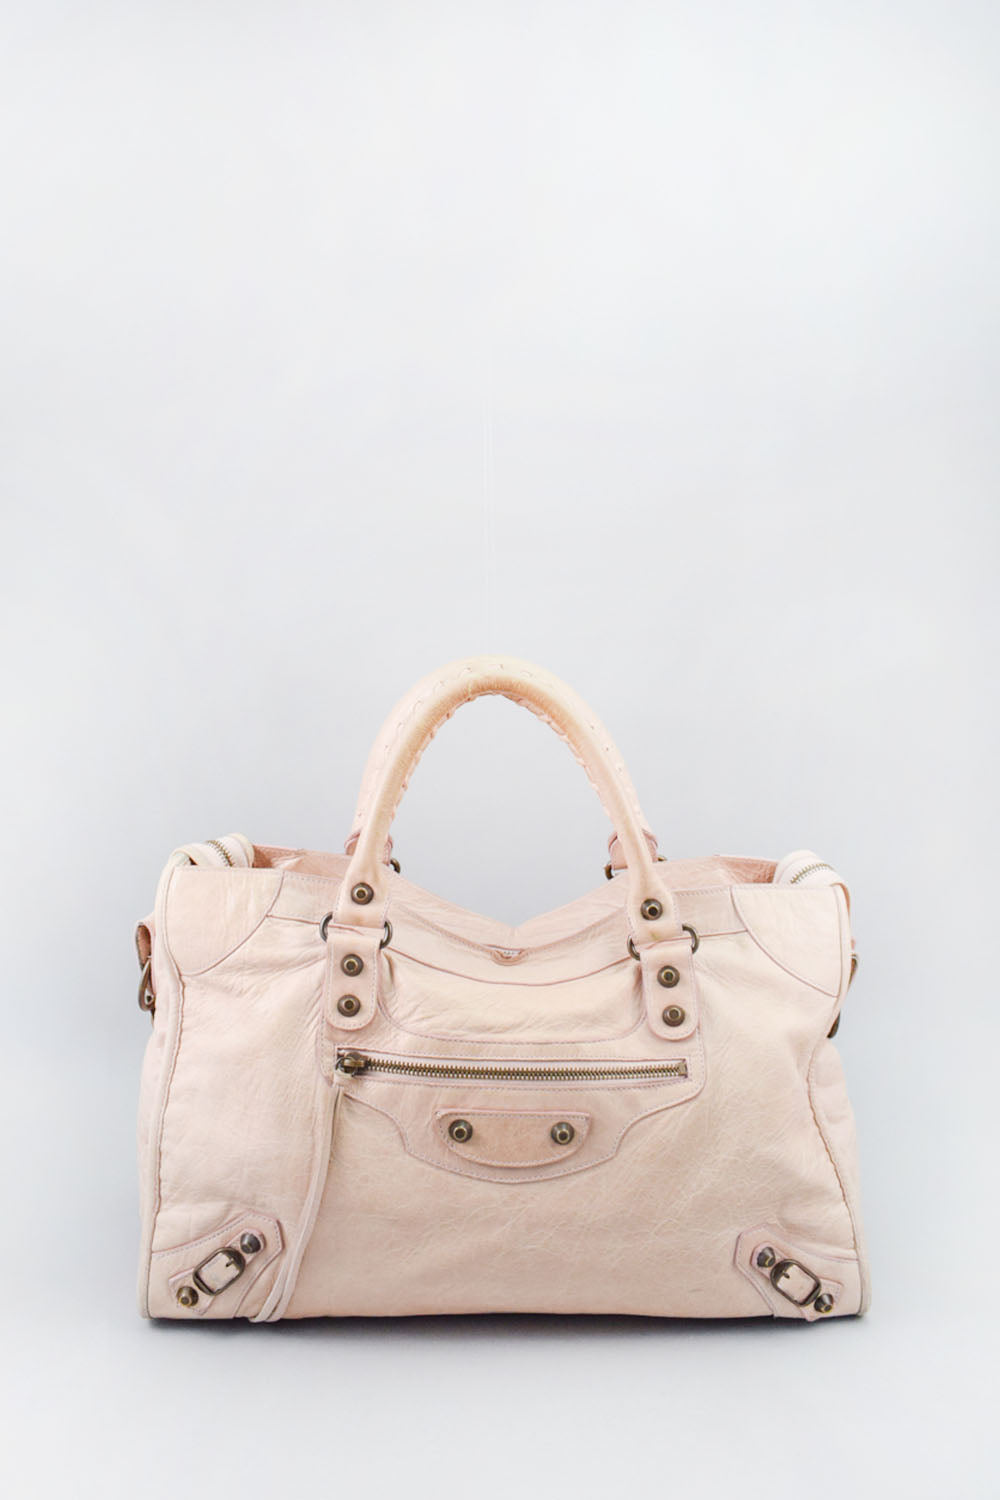 Balenciaga Cream City Bag